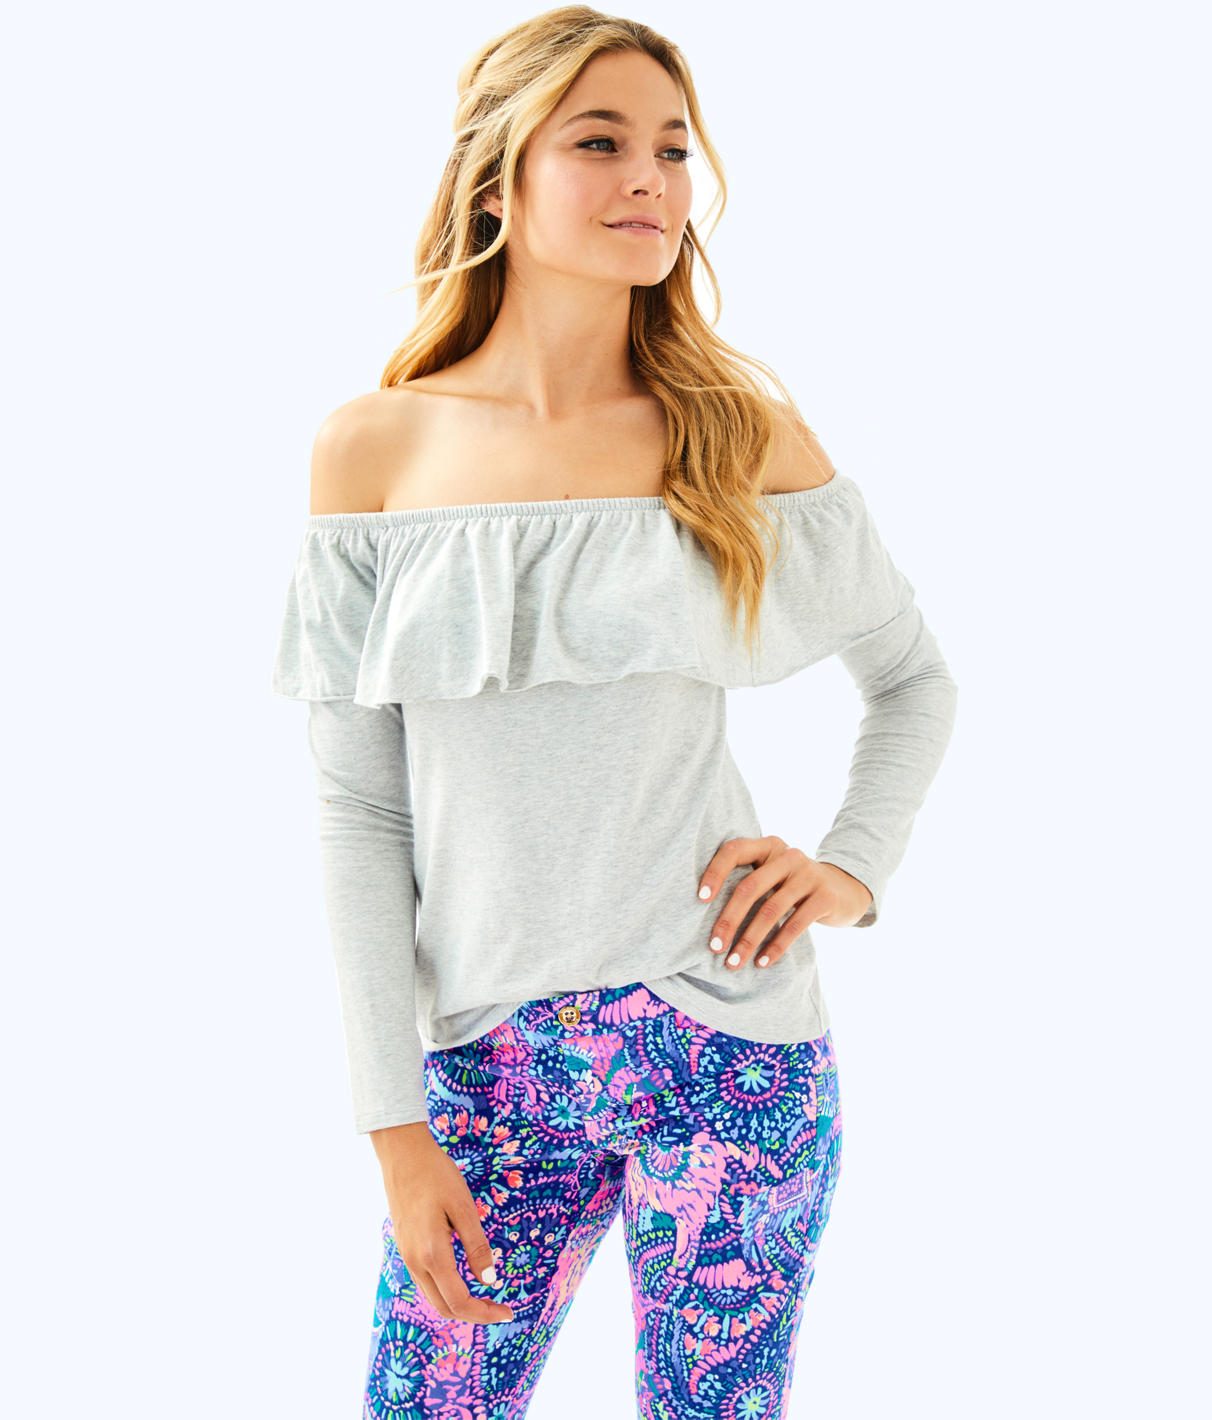 Lilly Pulitzer Lilly Pulitzer Womens Augustus Top